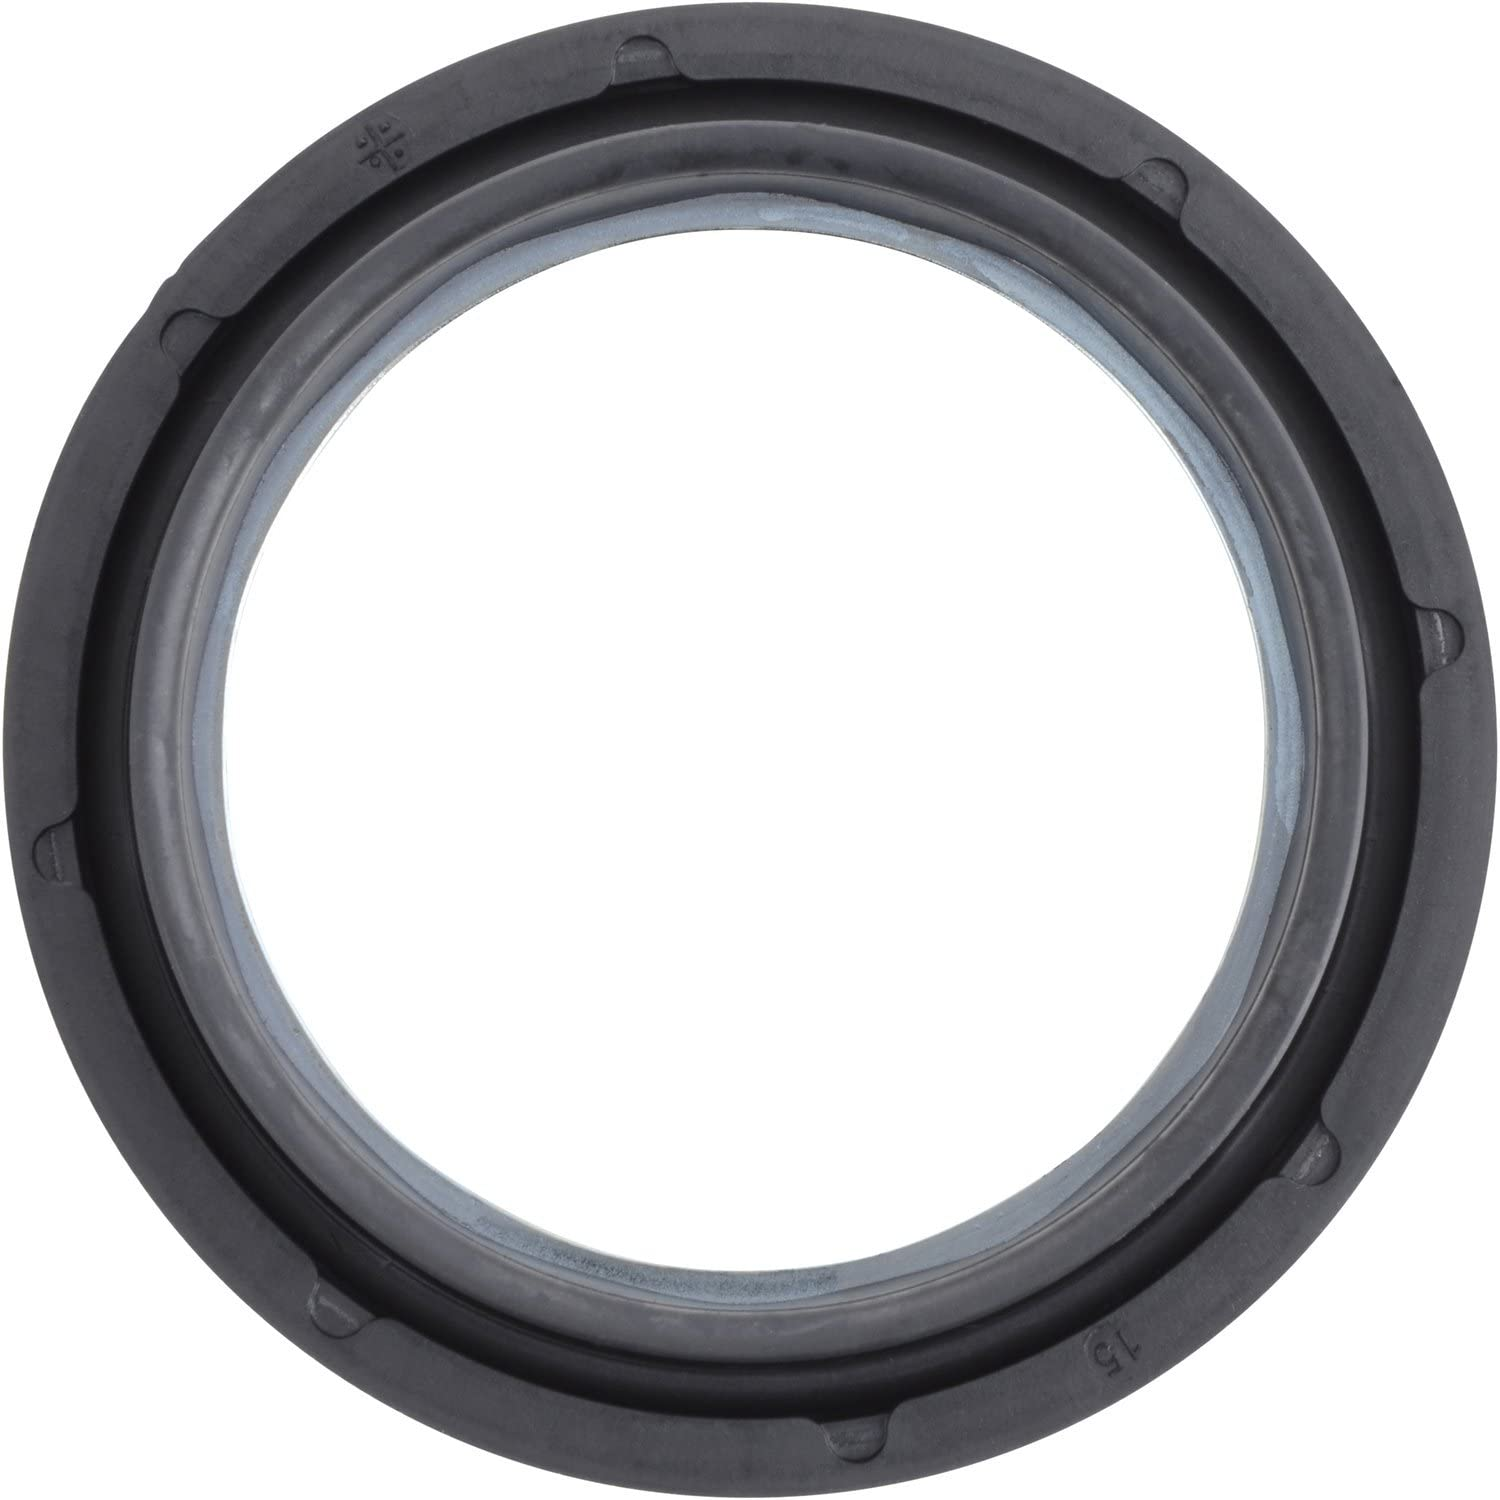 Max 54% OFF Spicer 50381 free shipping Knuckle Seal